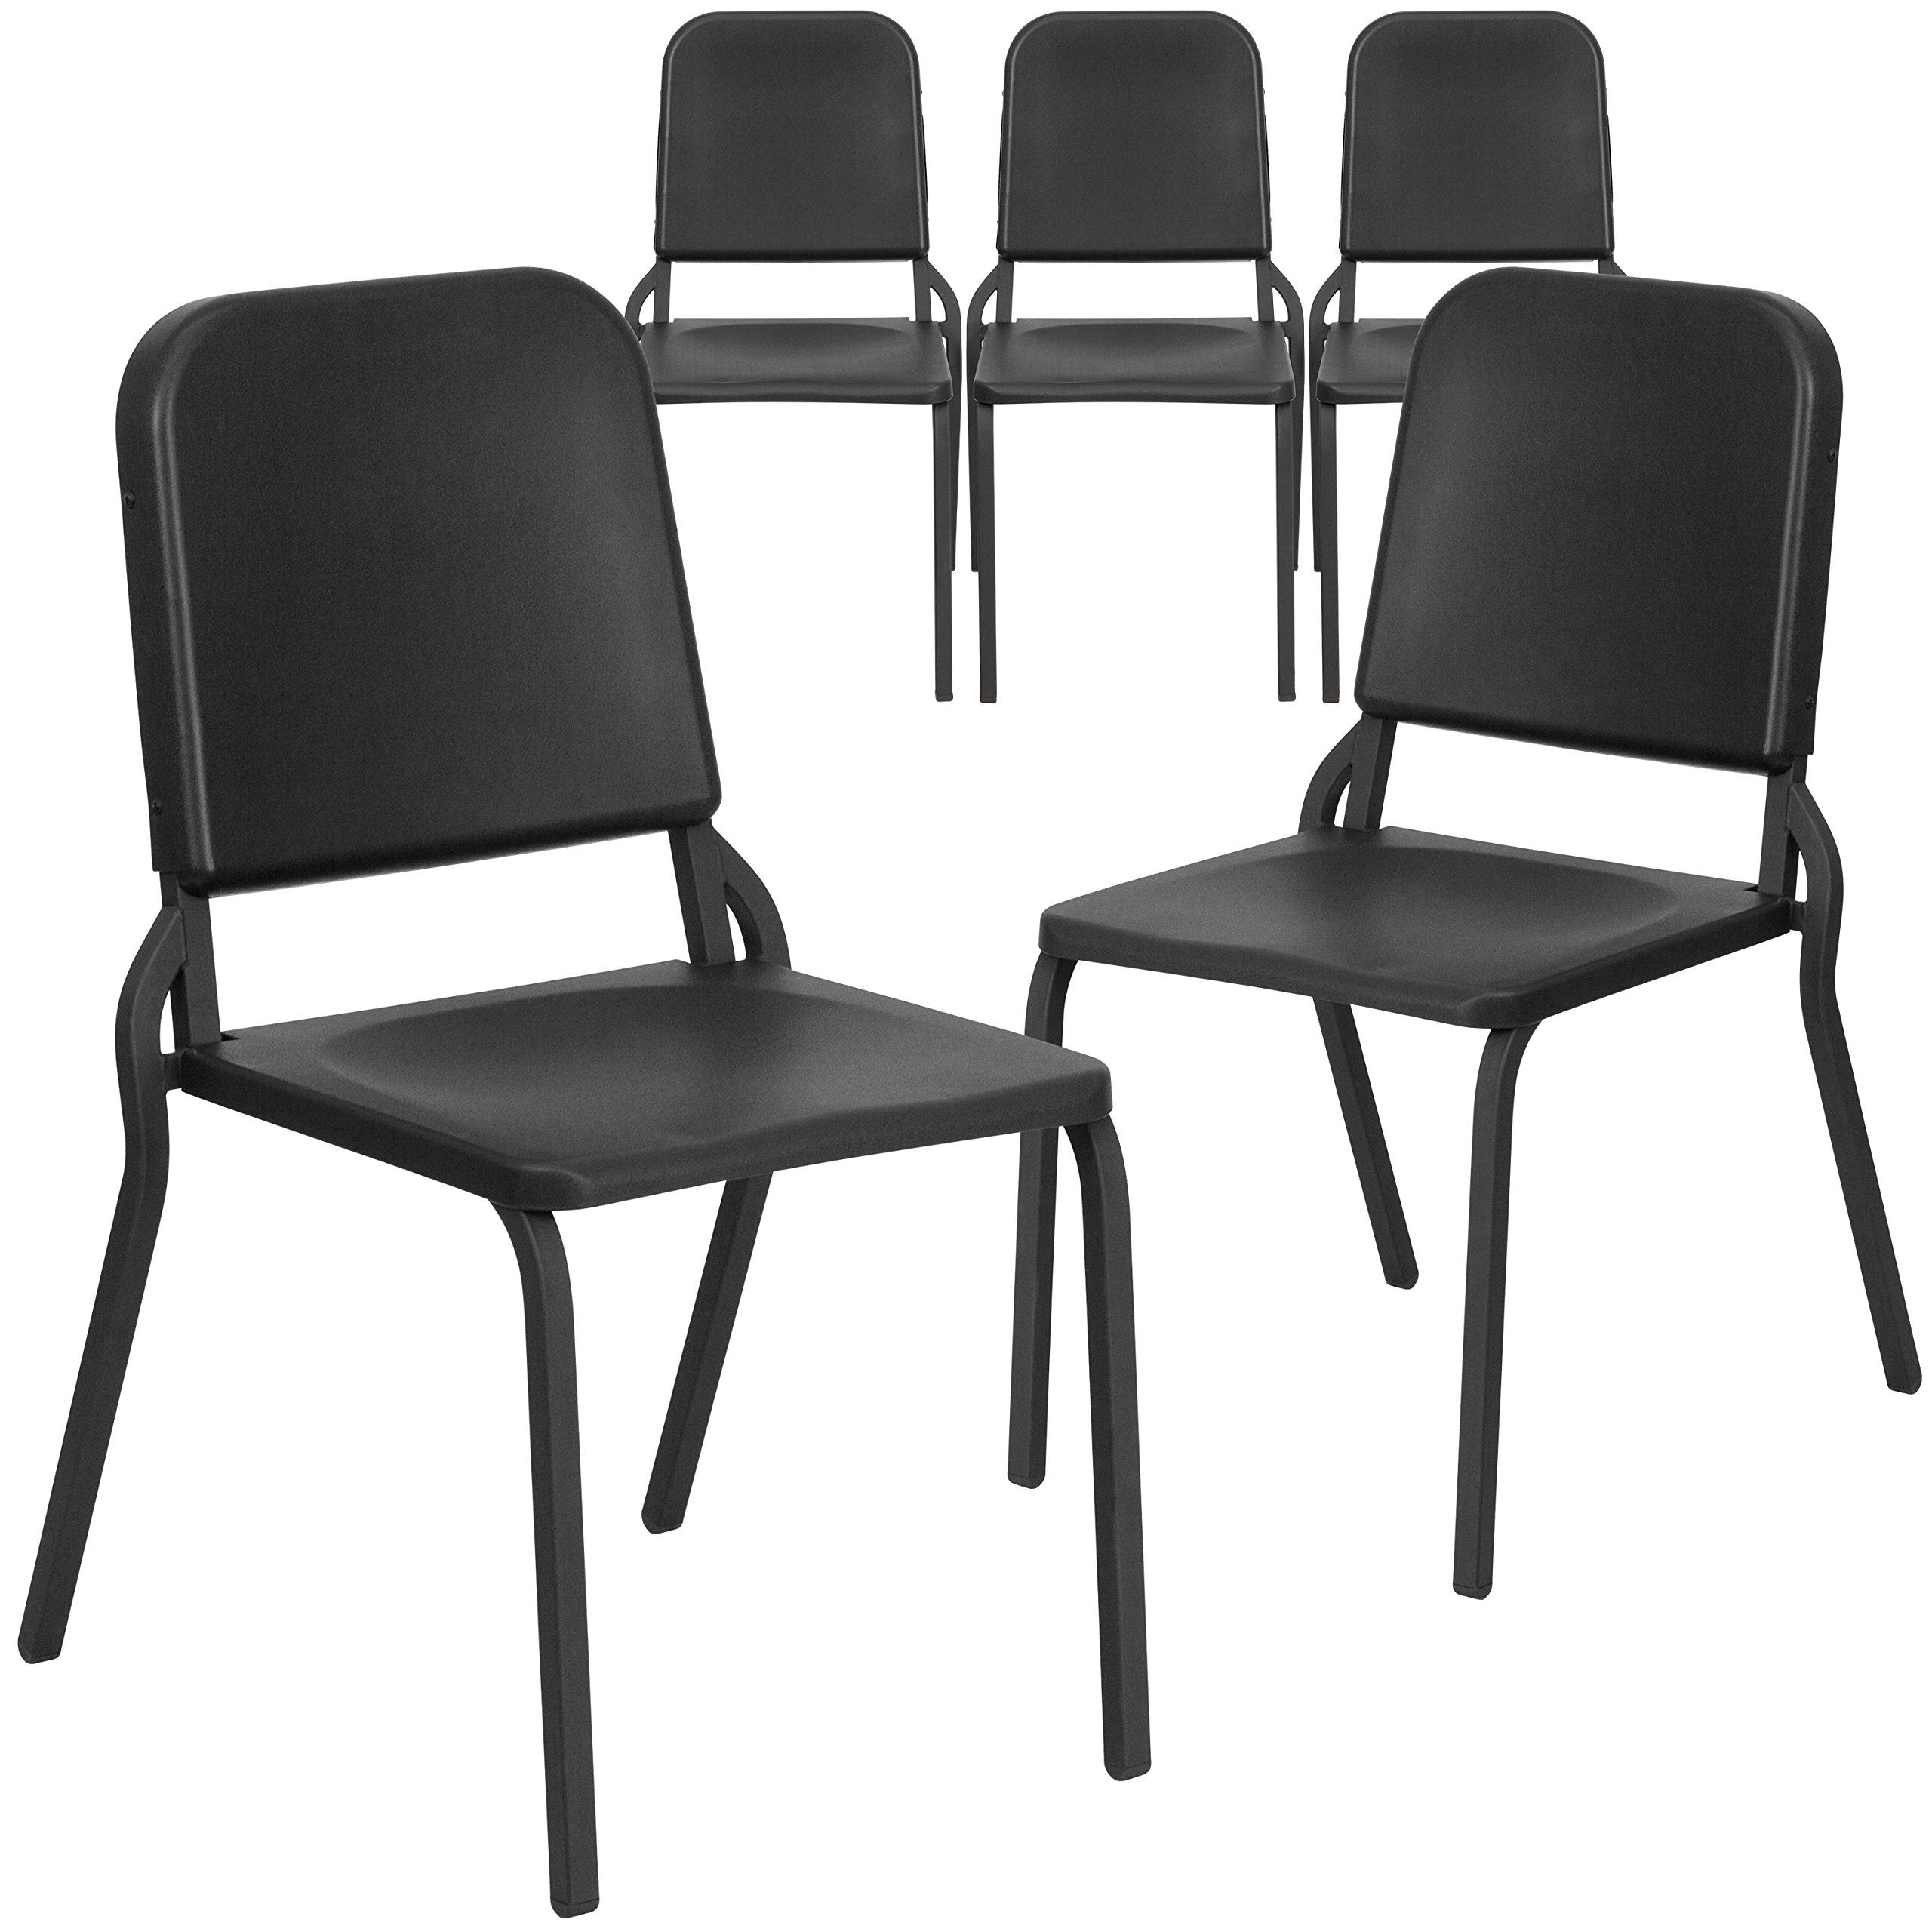 Flash Furniture 5 Pk. HERCULES Series Black High Density Stackable Melody Band/Music Chair